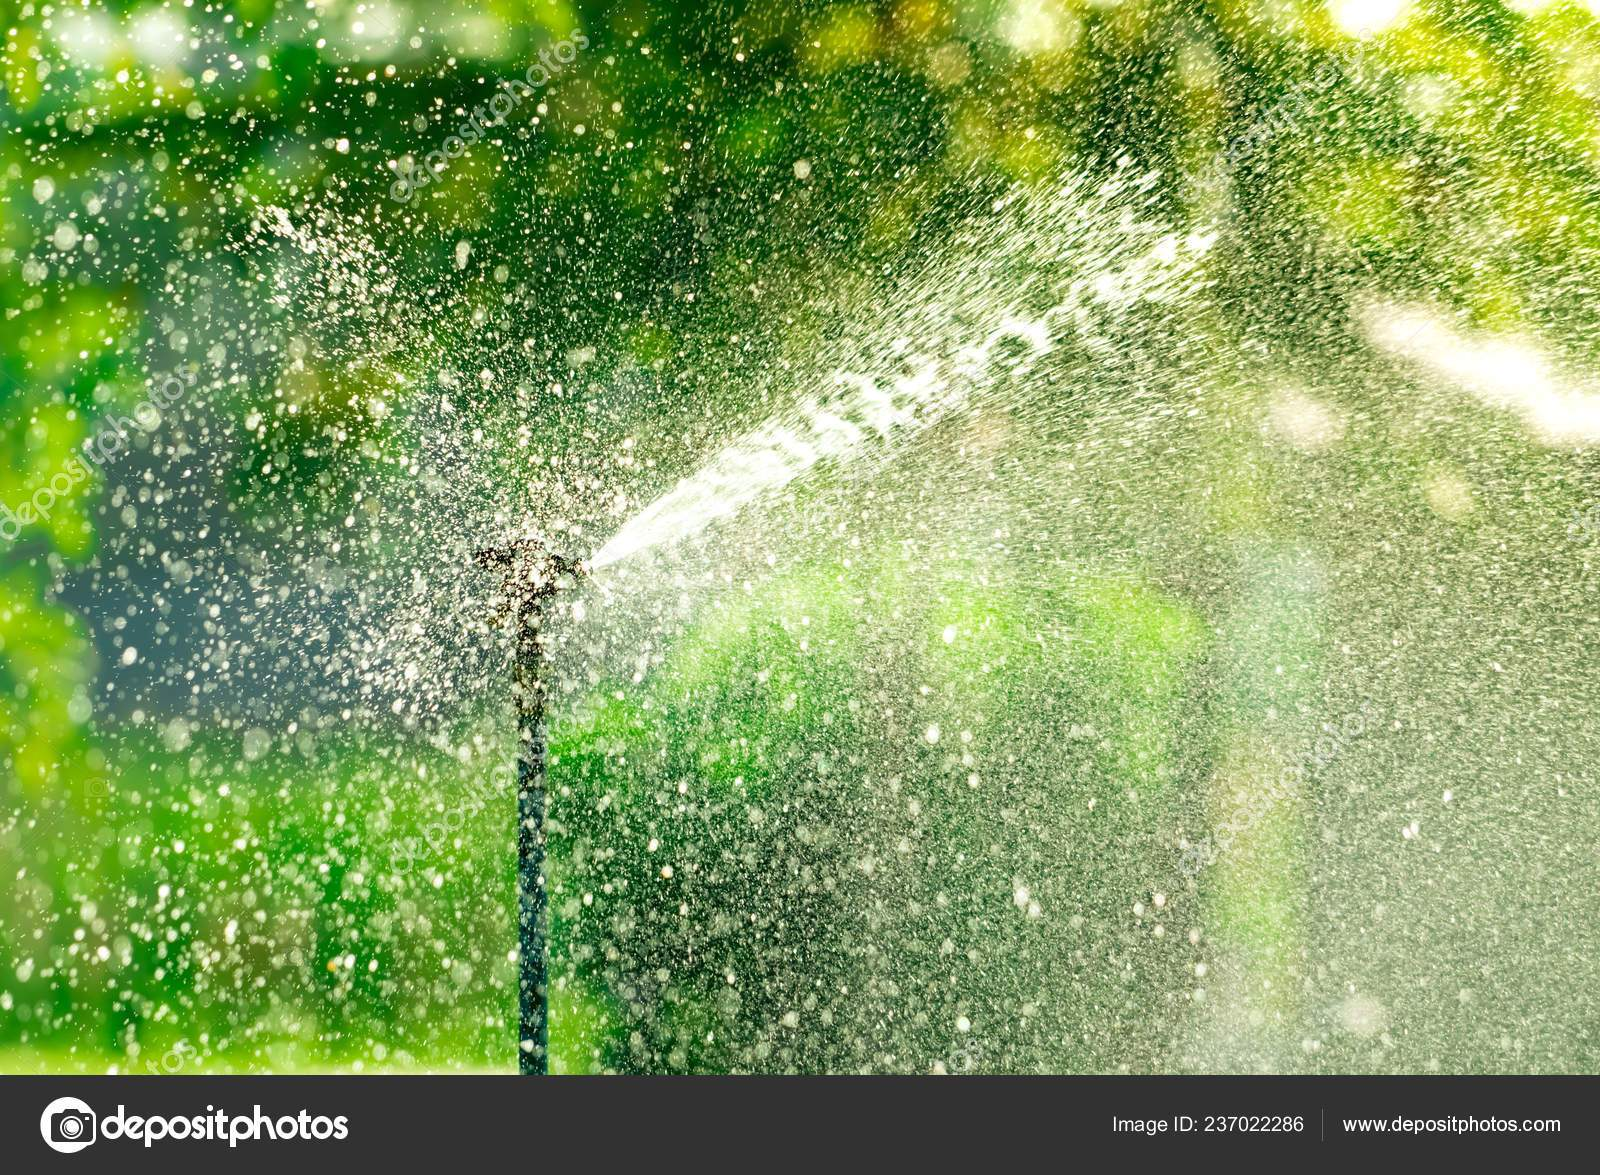 depositphotos stock photo automatic lawn sprinkler watering green